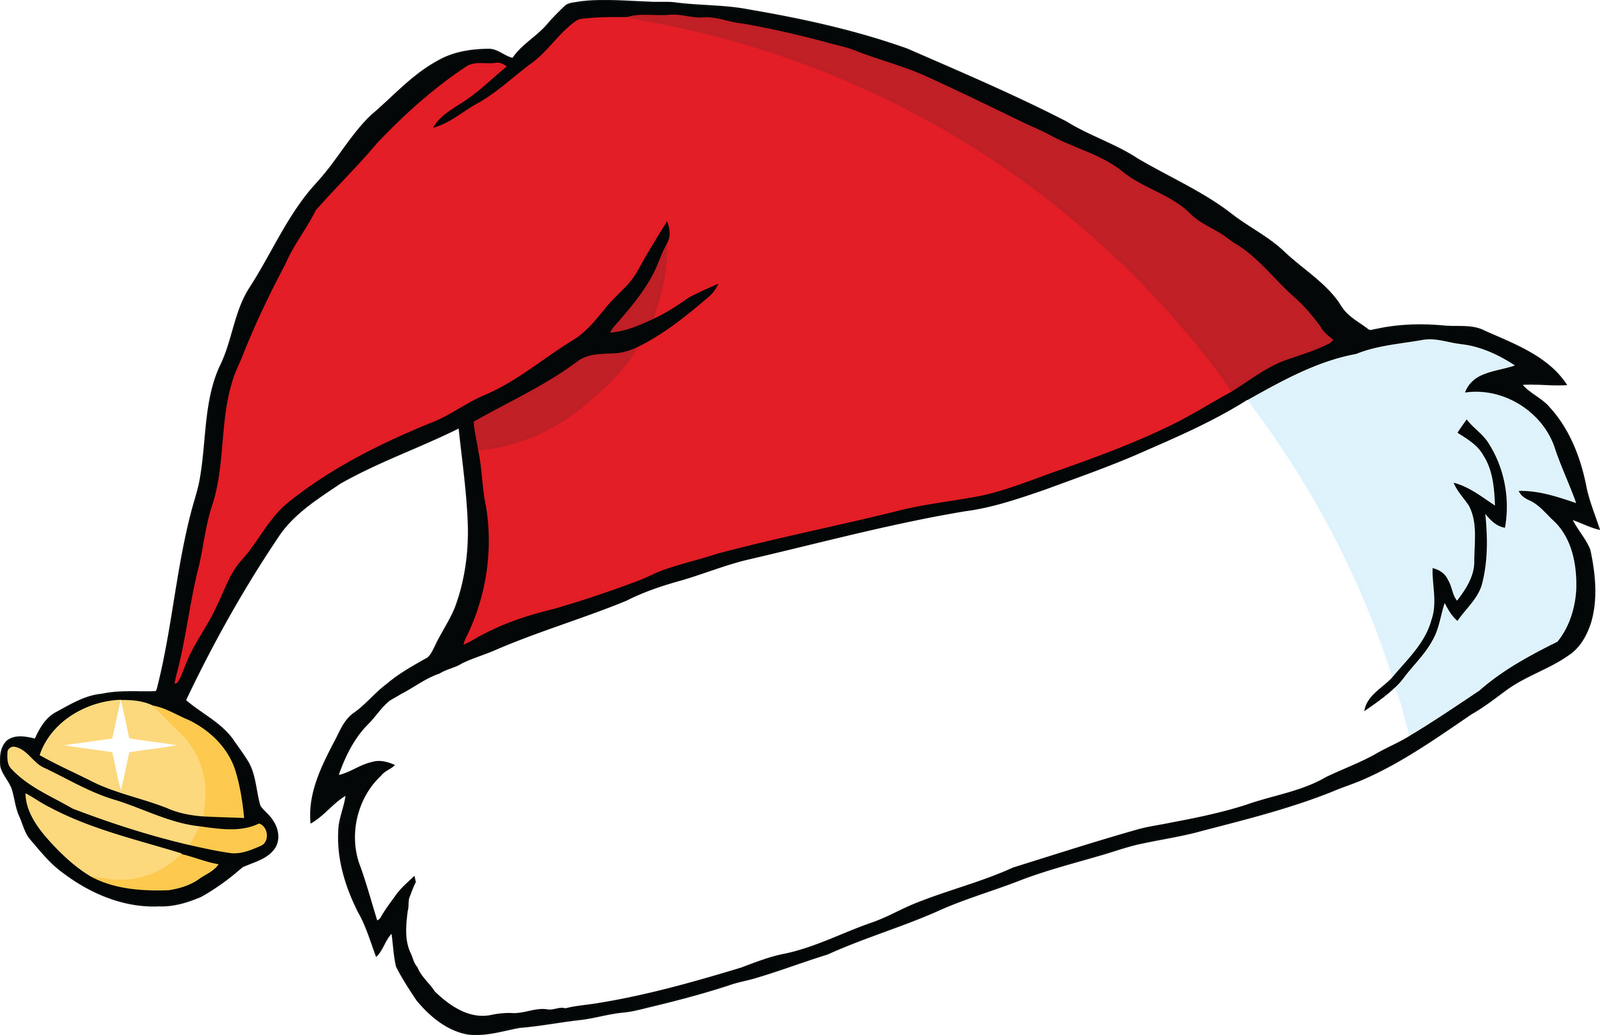 Christmas hat clipart free.